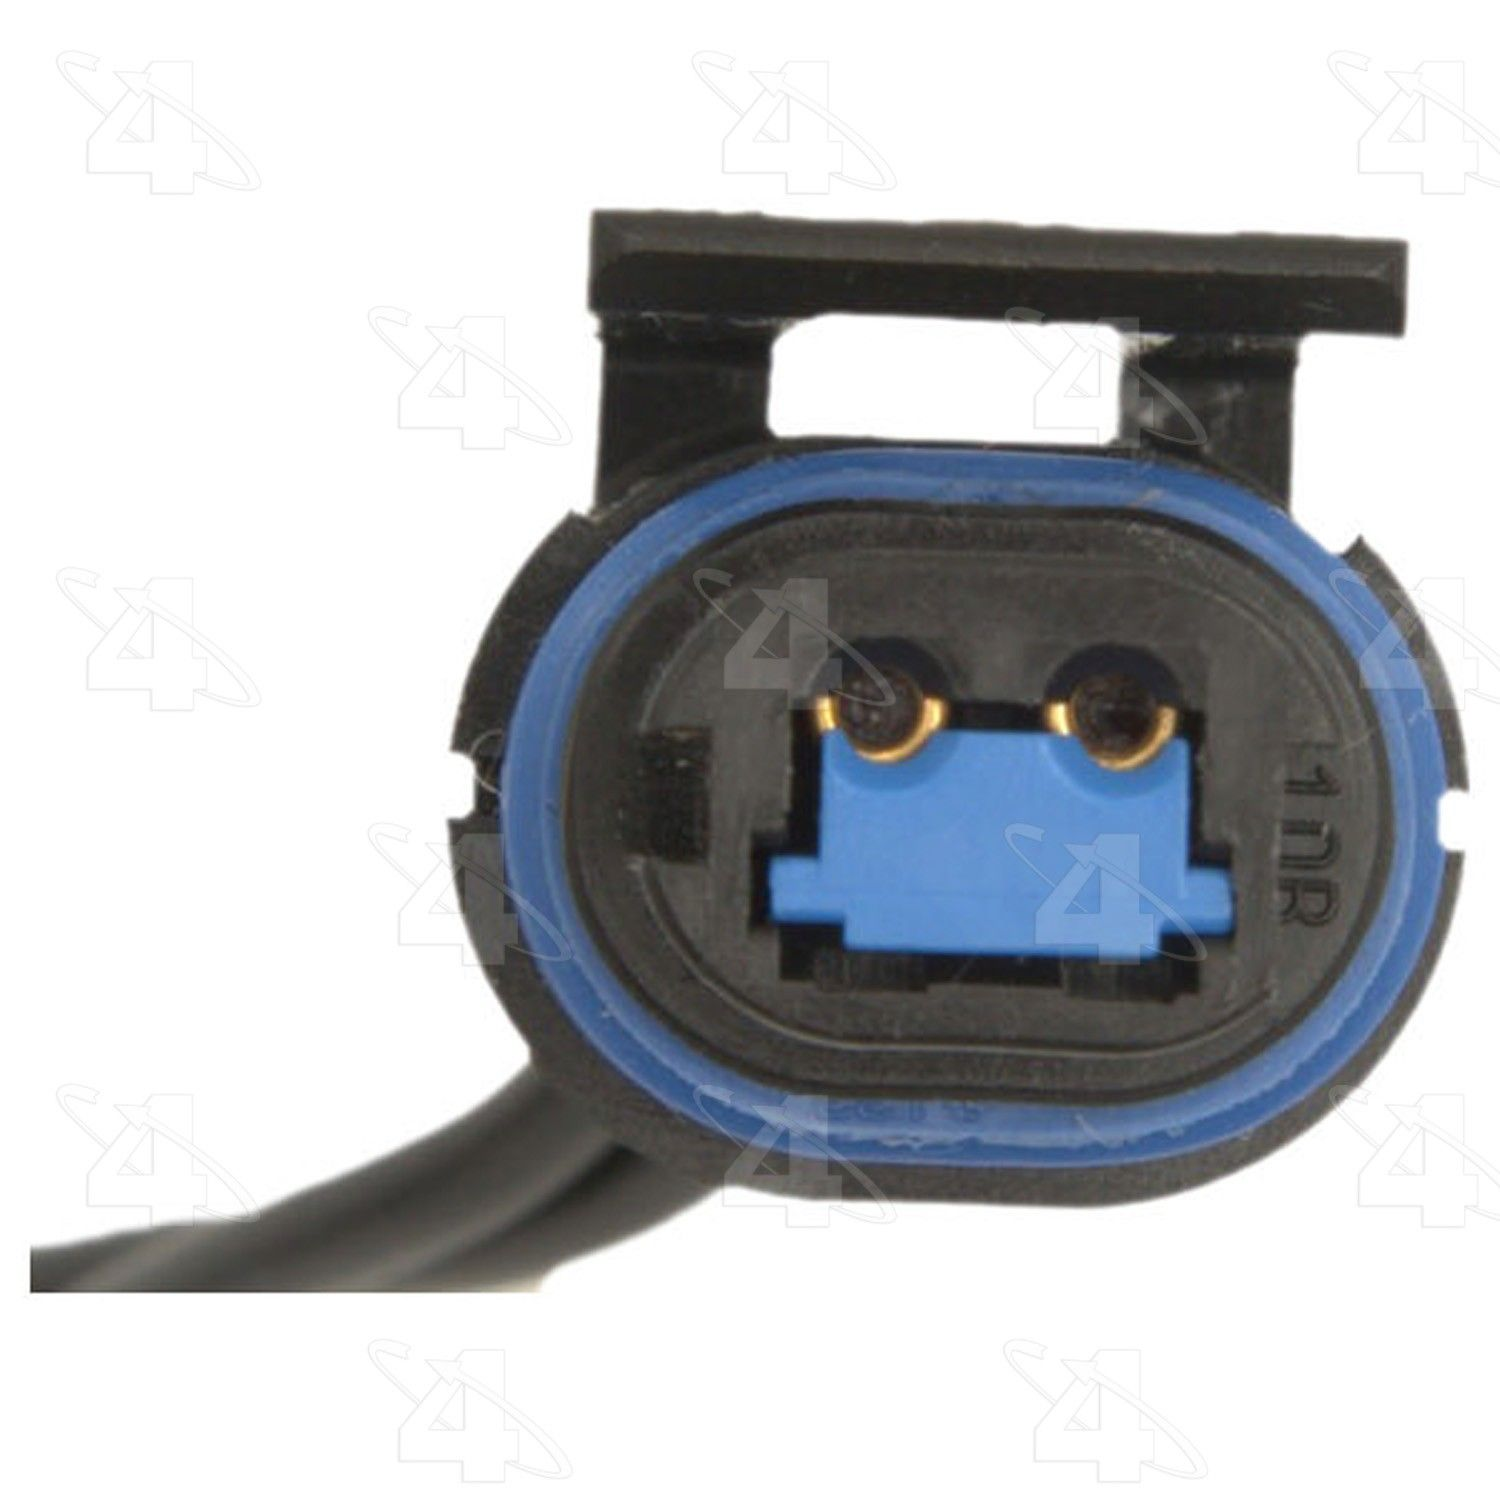 A//C Clutch Cycle Switch Connector-Harness Connector 4 Seasons 37235